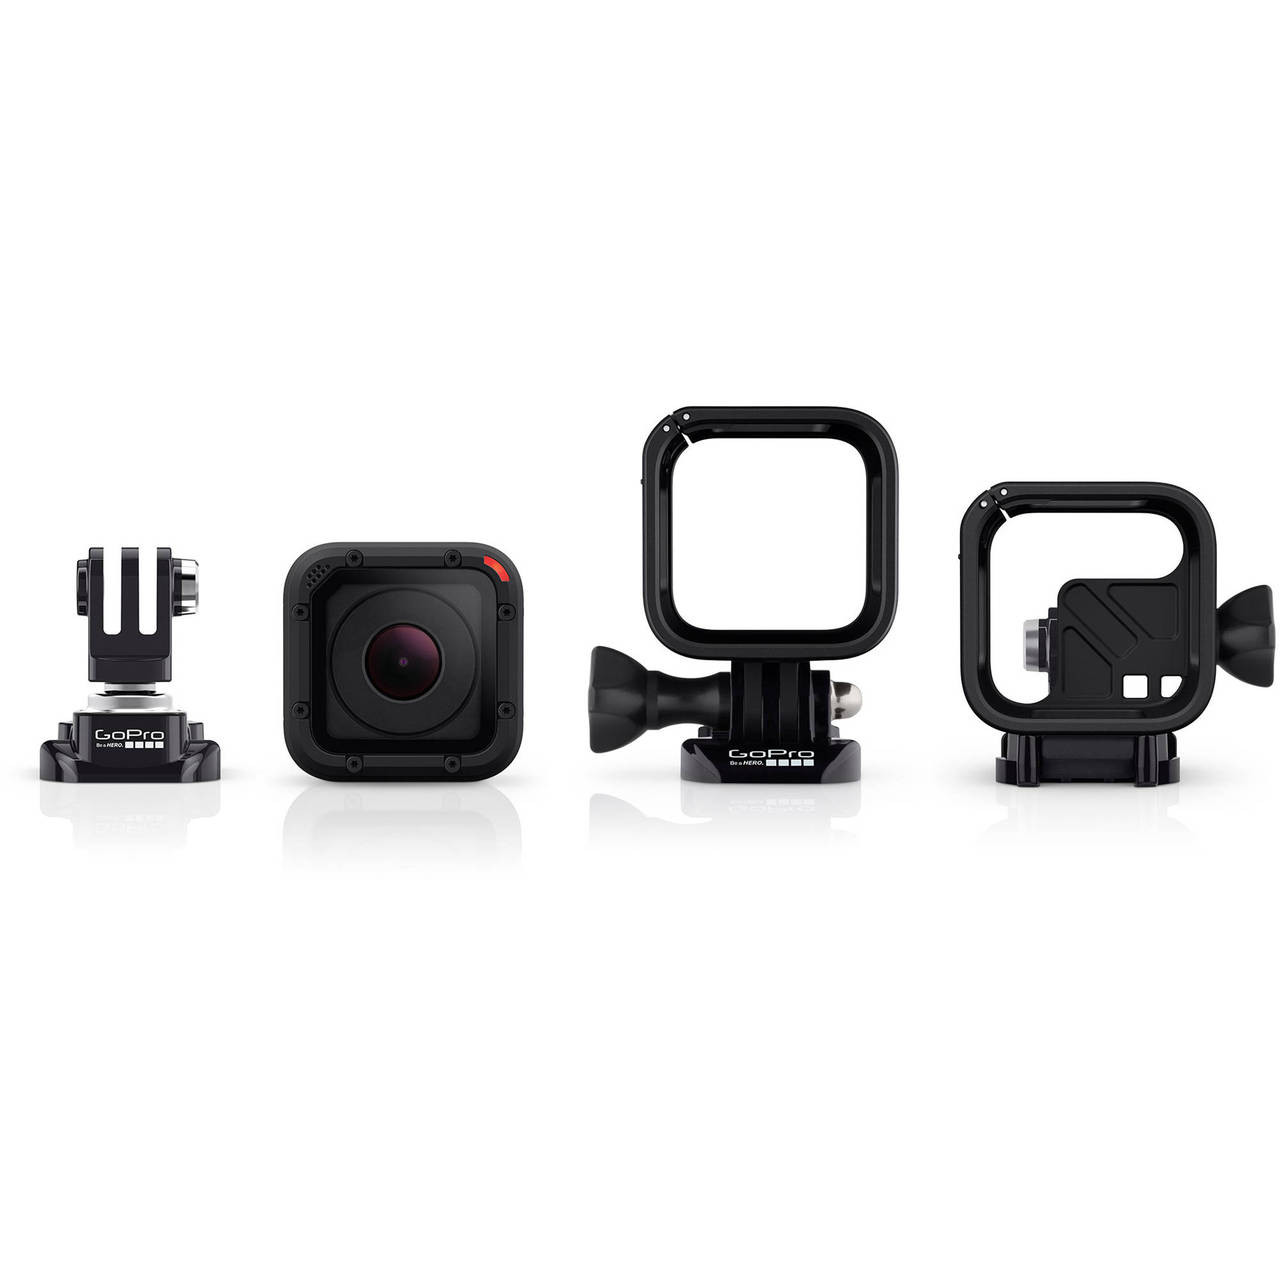 GoPro Hero4 Session Included Accessories